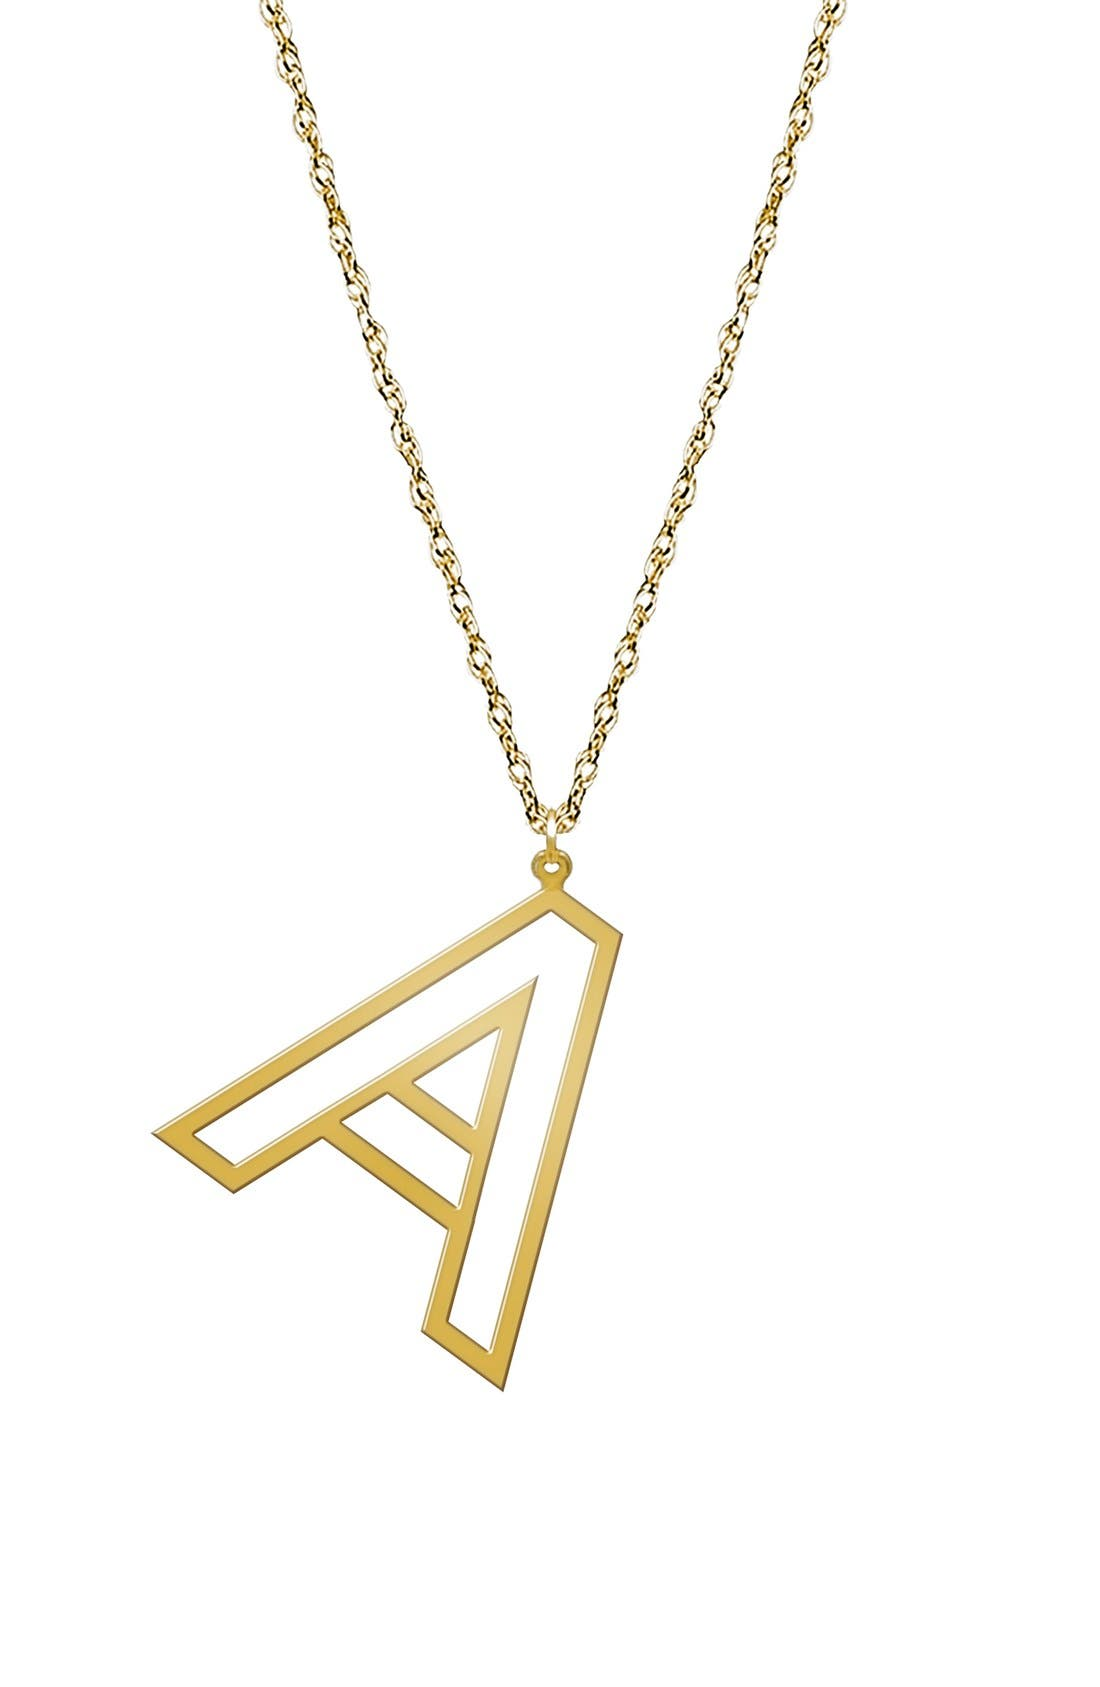 Jane Basch Designs Varsity Initial Pendant Necklace